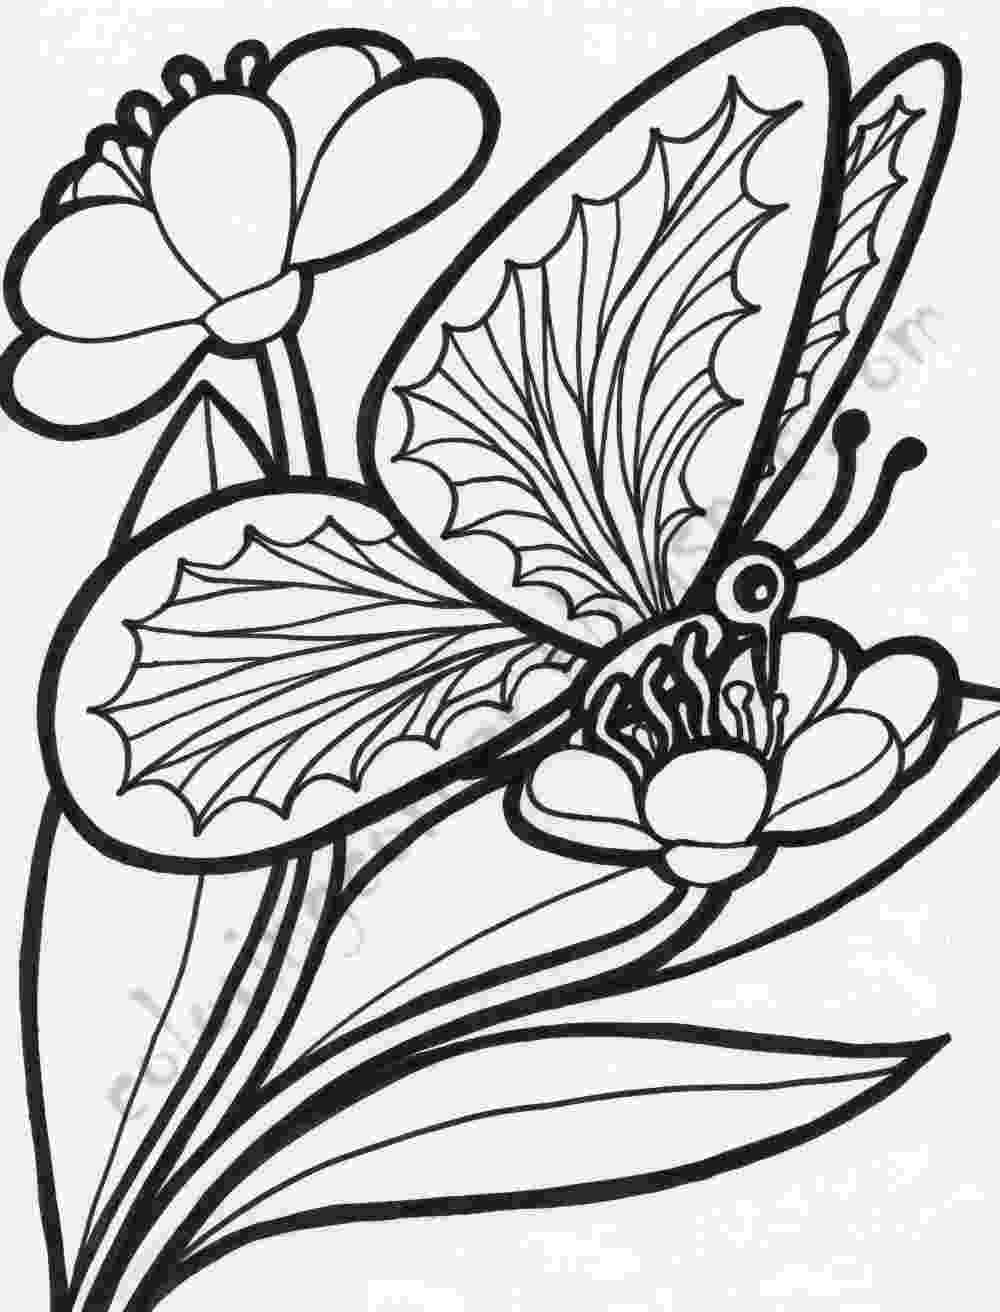 flowers coloring pages printable spring flower coloring pages to download and print for free pages printable coloring flowers